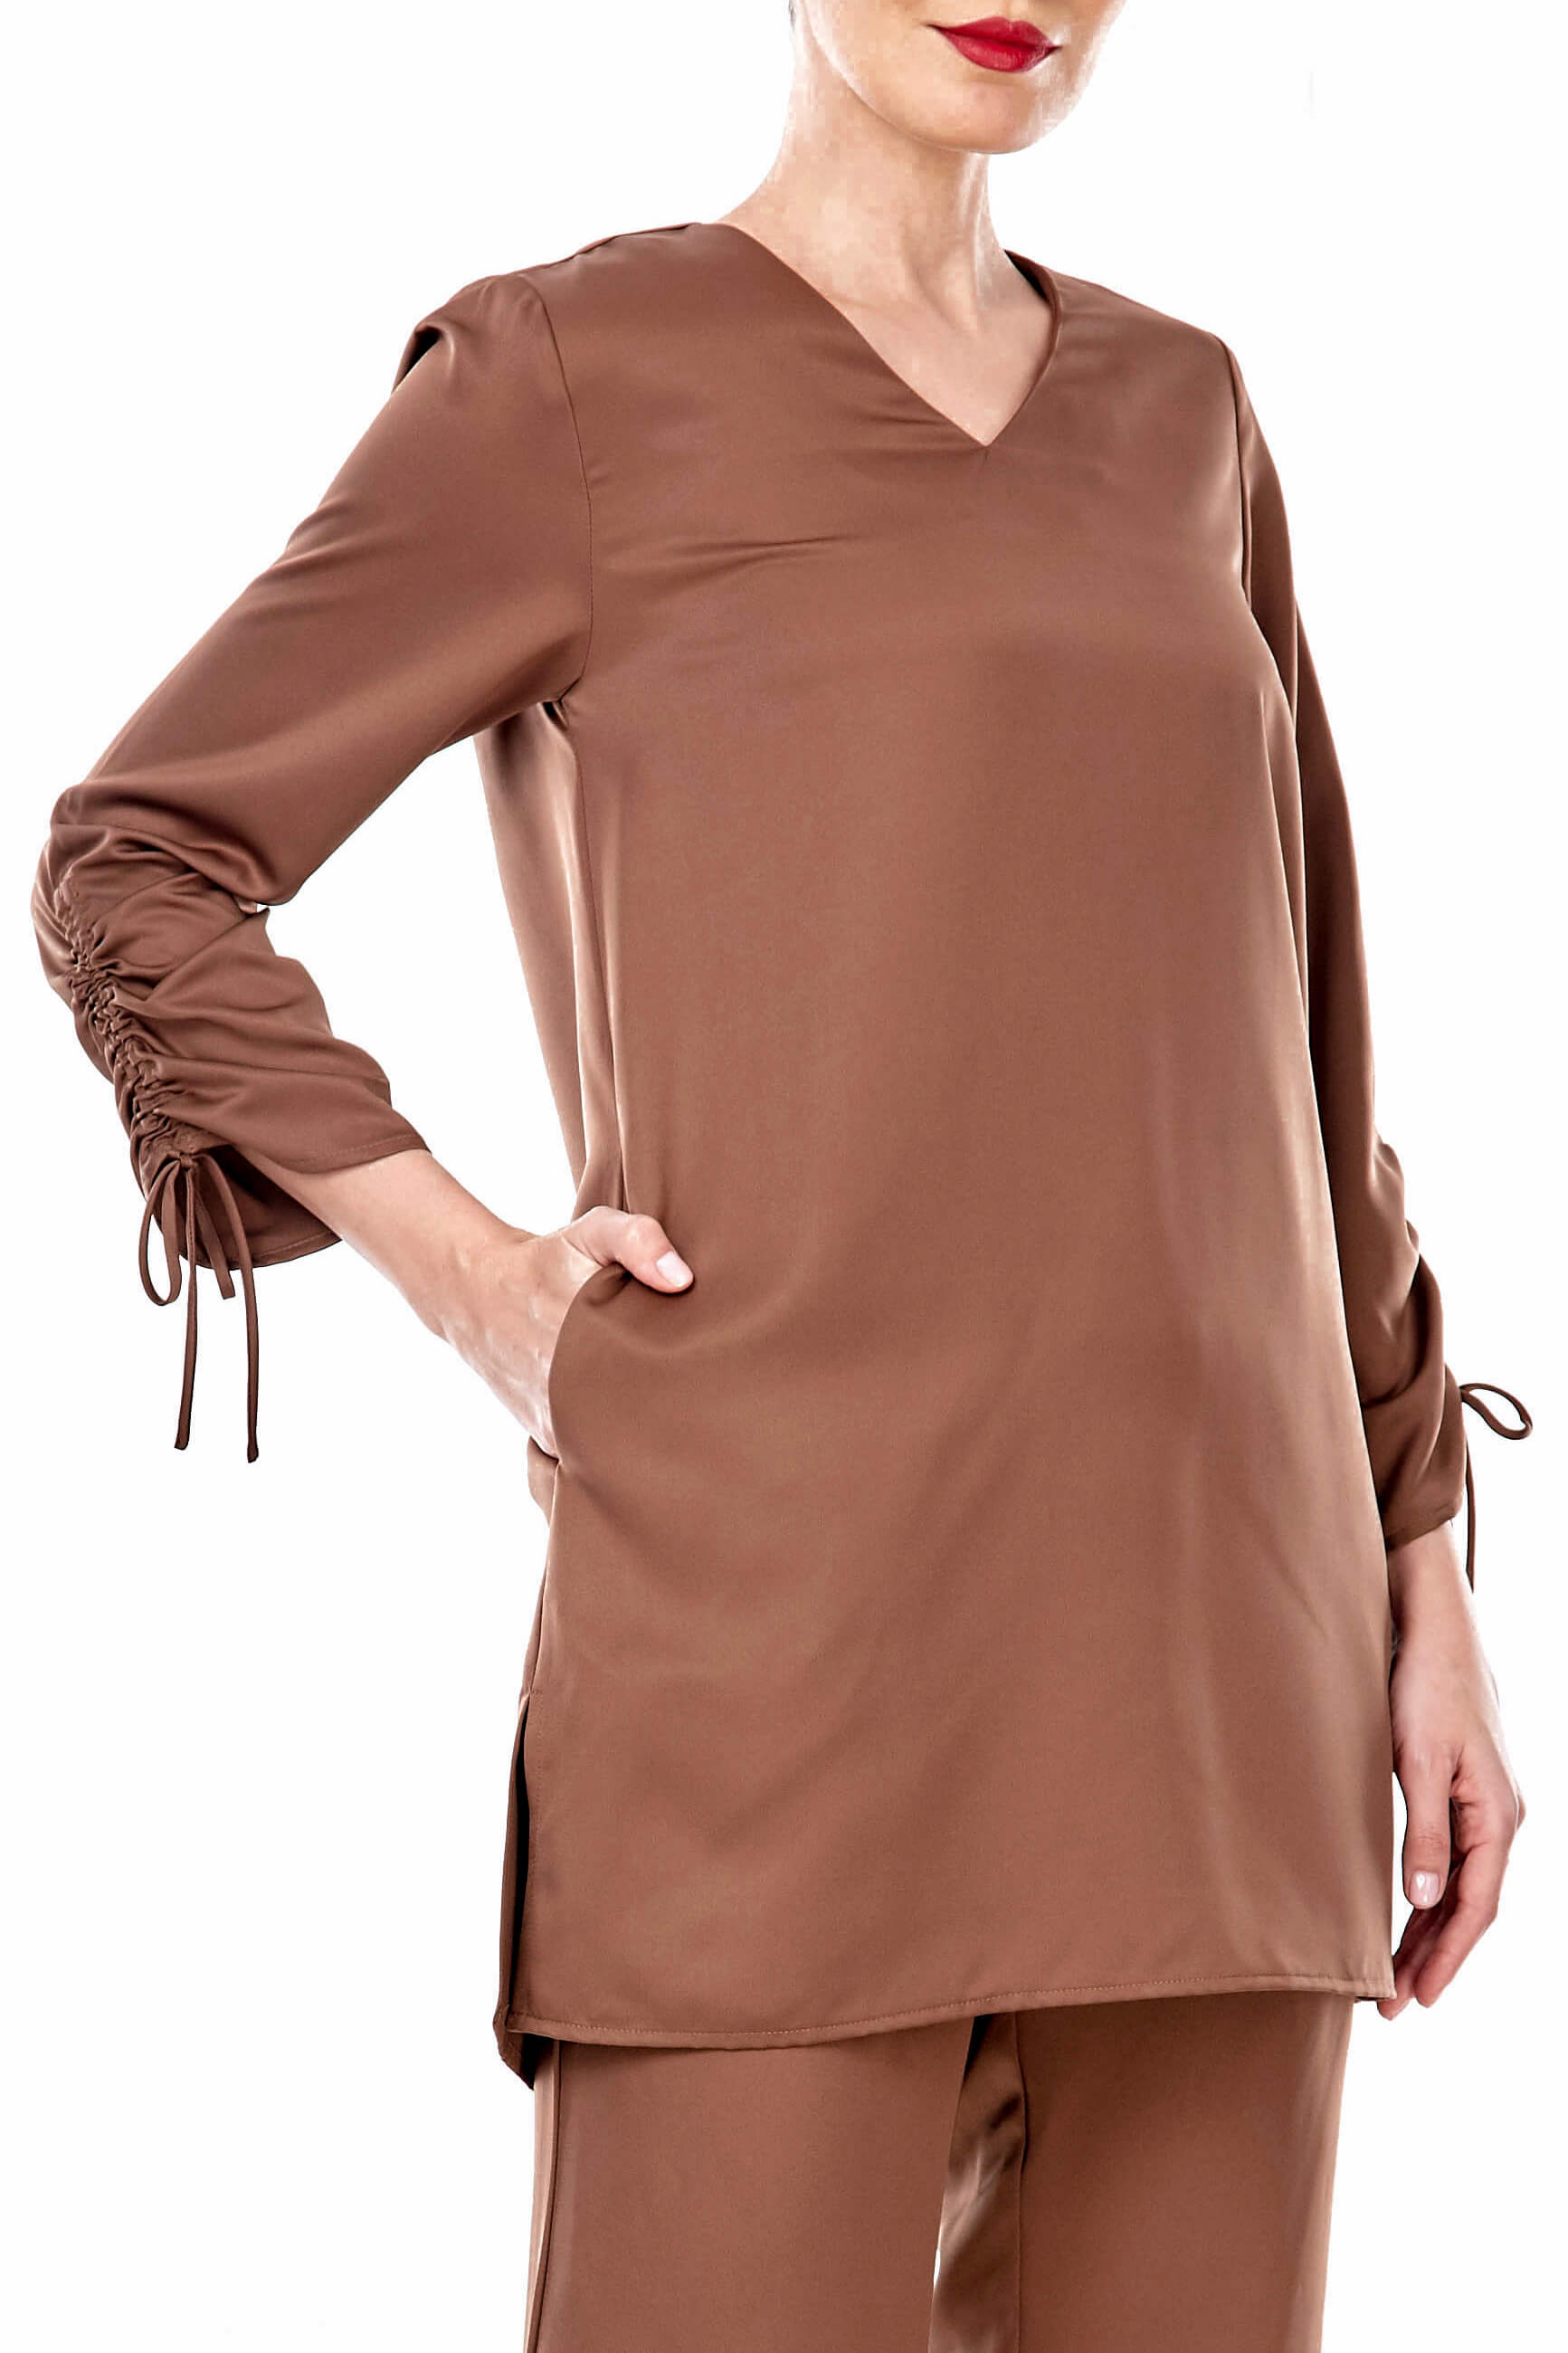 Rayqa Brown Blouse 1